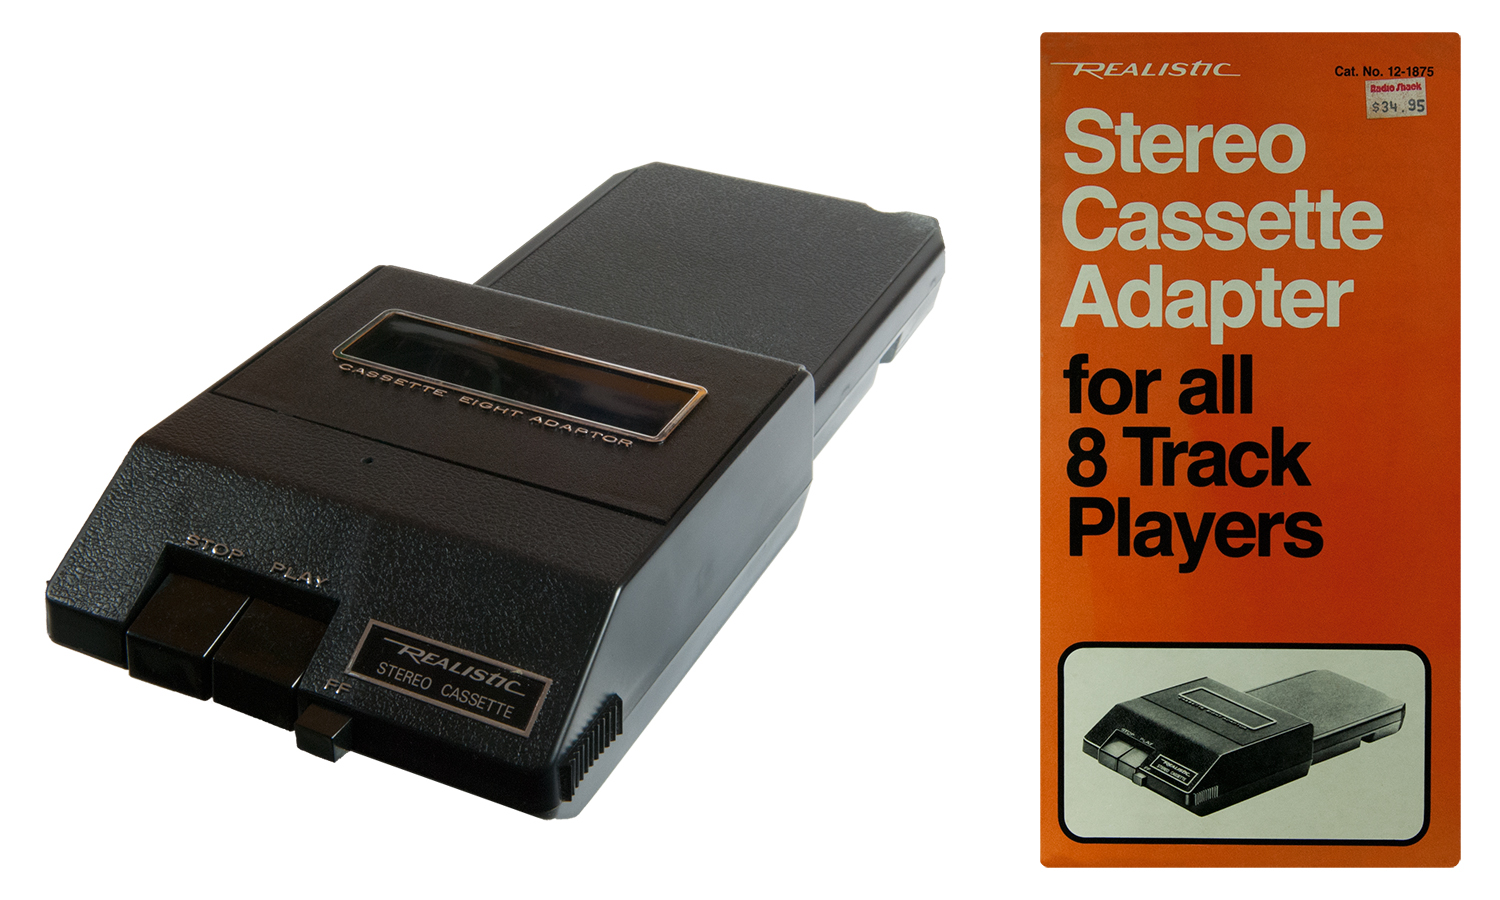 8 track adapter row 1